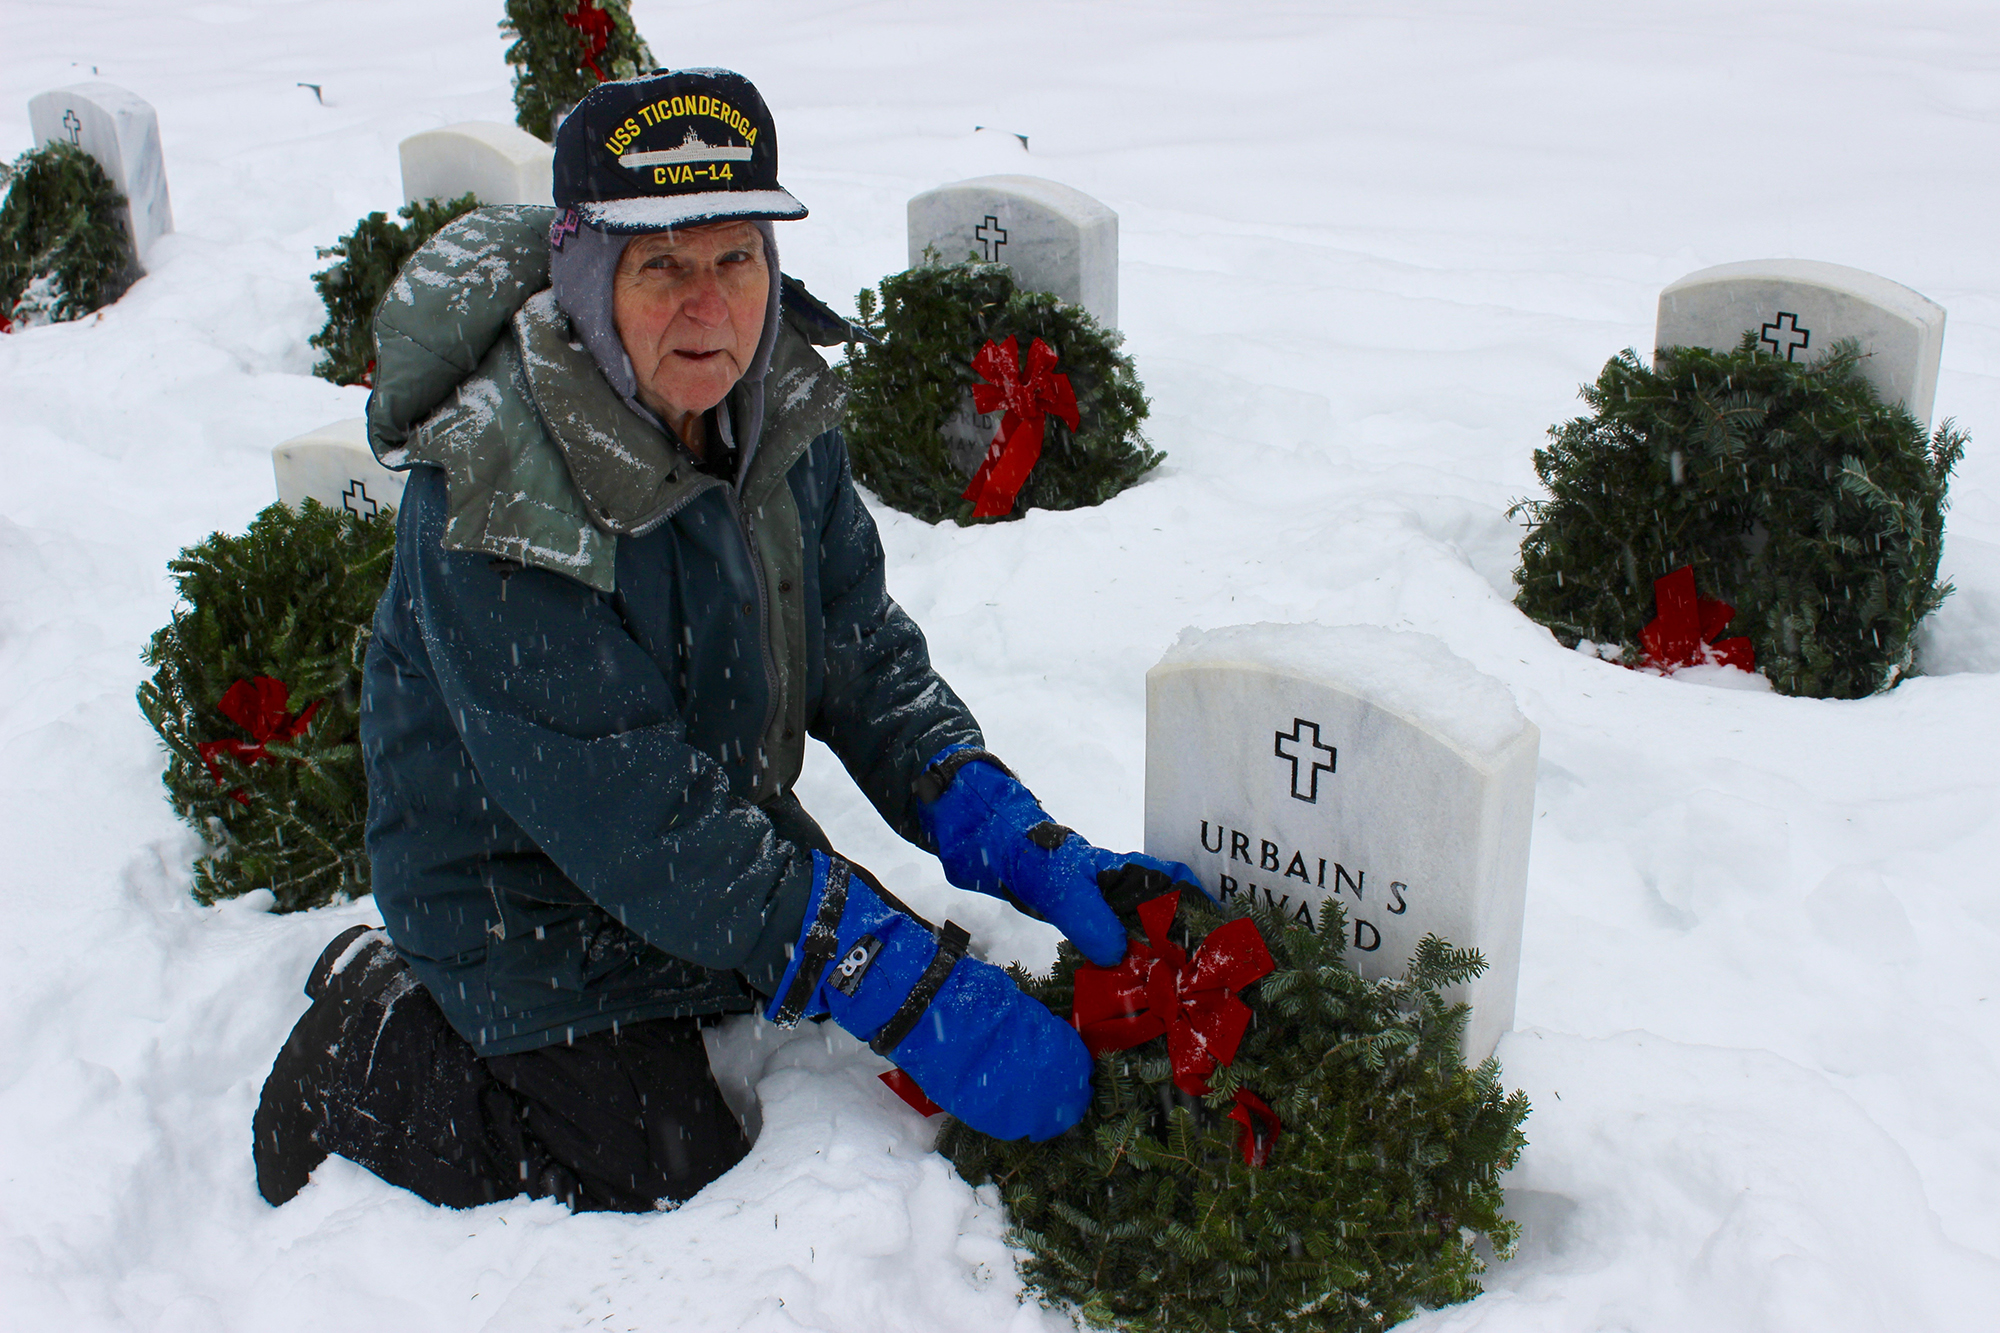 Veteran Ron Rivard places a wreath against his brother Urbain's gravestone. Dozens showed up to the Southern Maine Veteran's Cemetery in Springvale to pay their respects at the Wreaths Across America event Saturday. RYDER SCHUMACHER/Journal Tribune